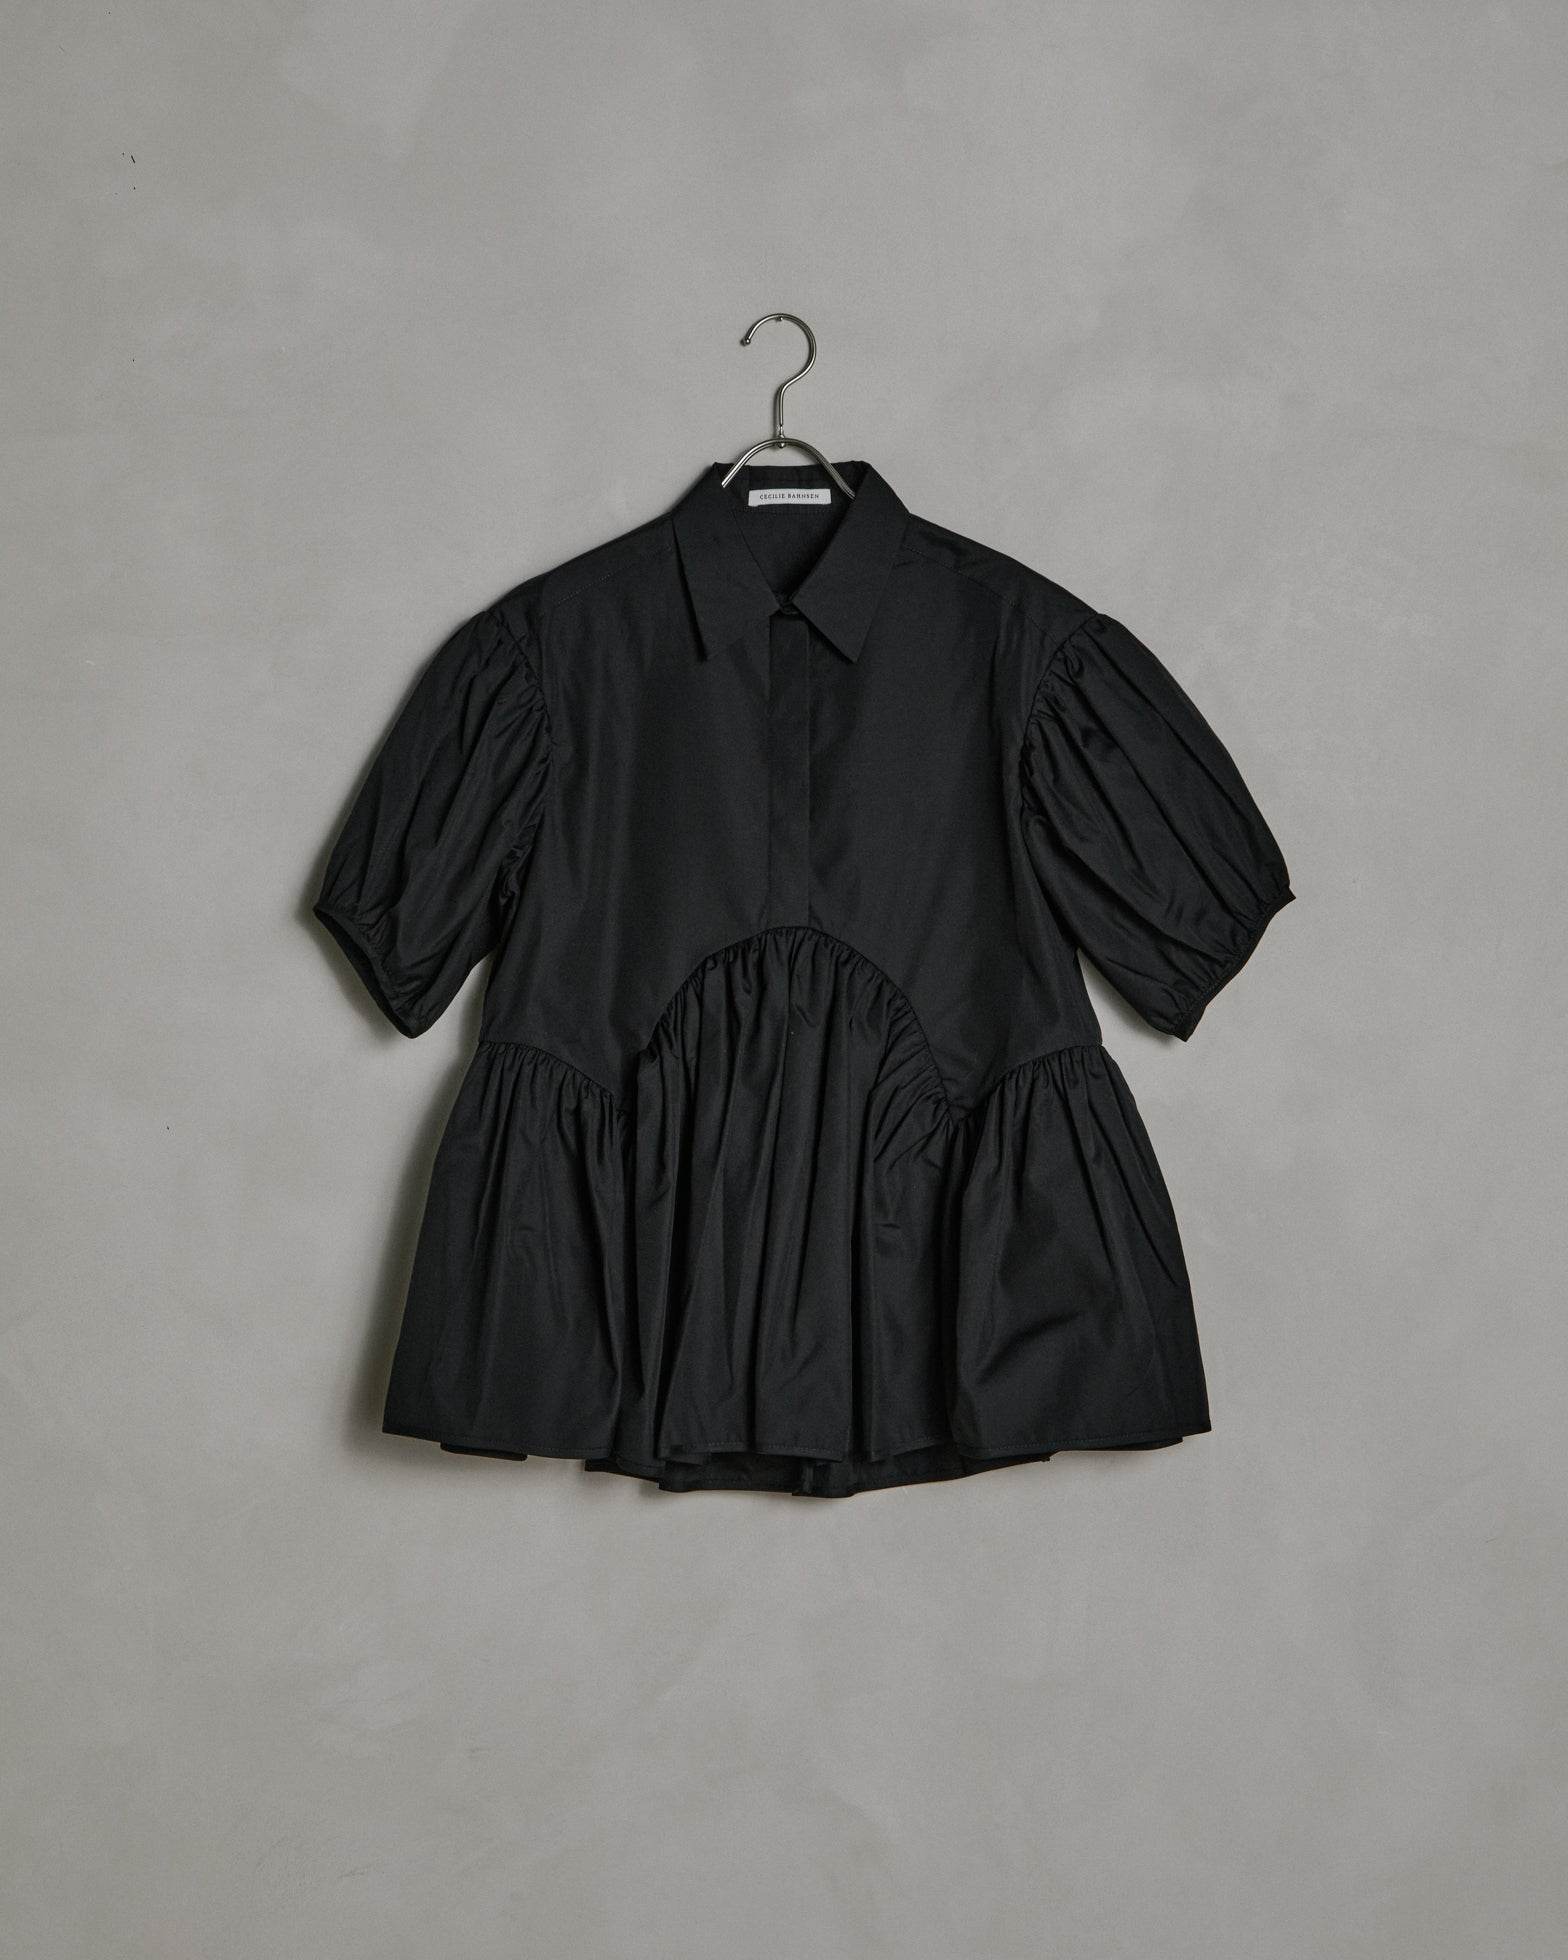 Ellie Blouse in Black